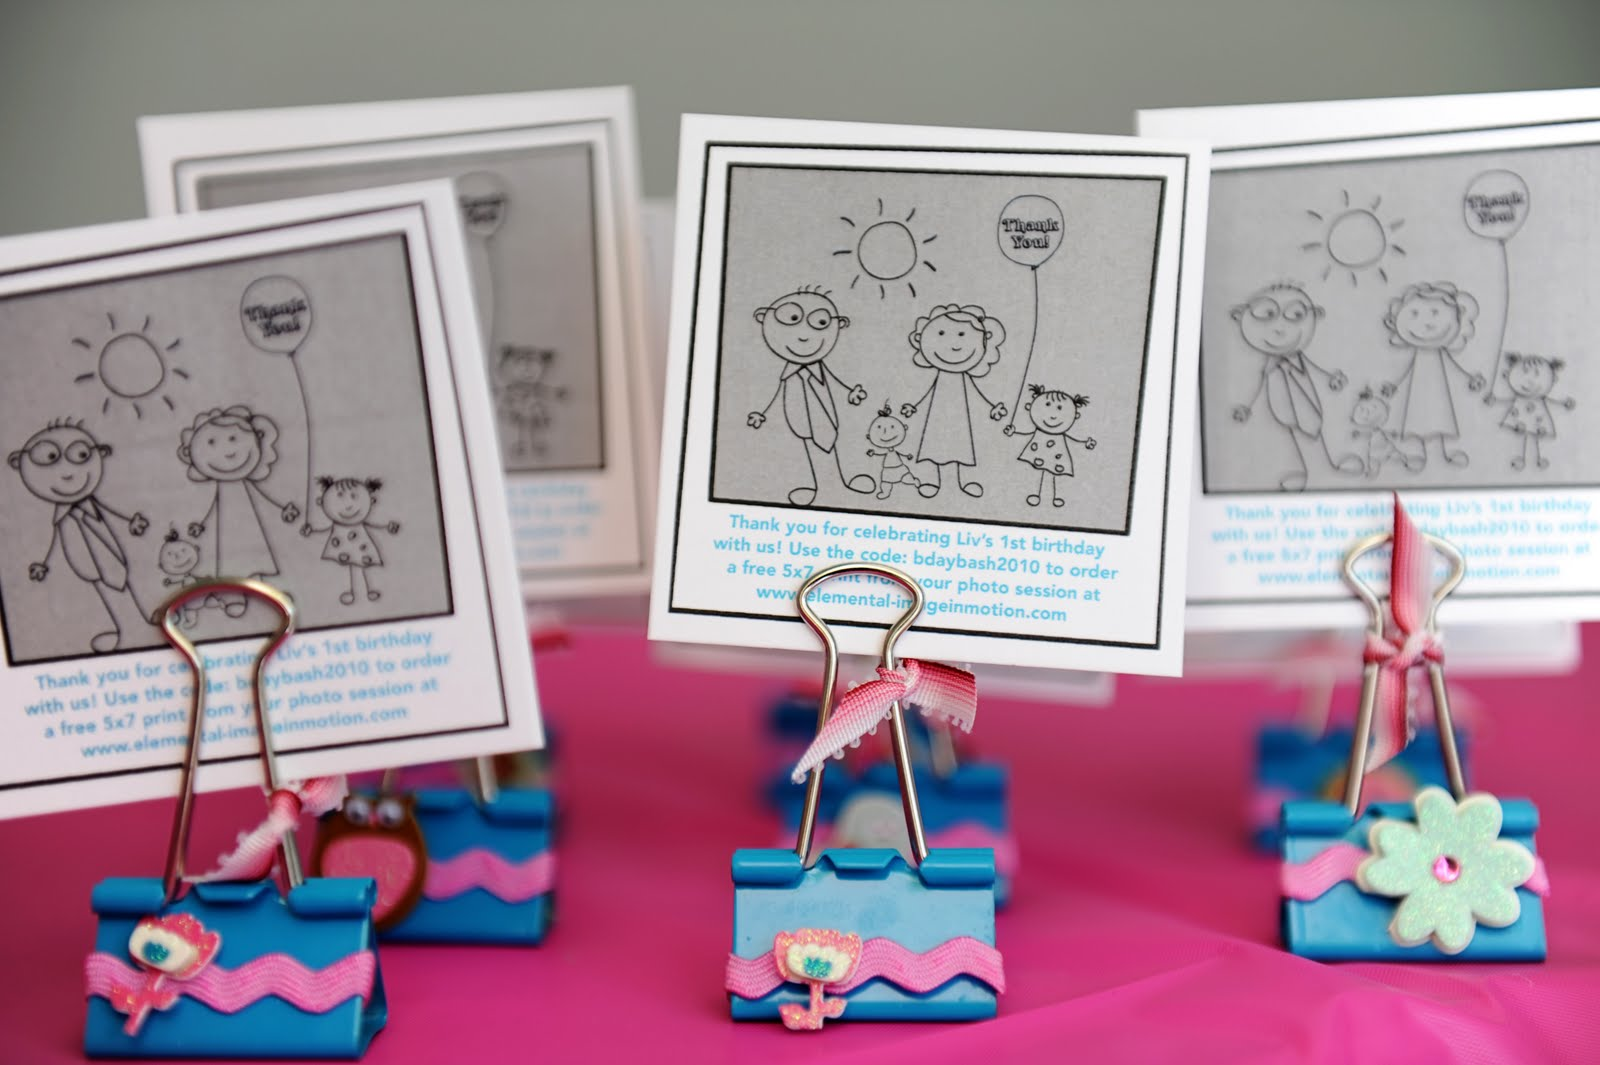 Creative birthday party favors for adults